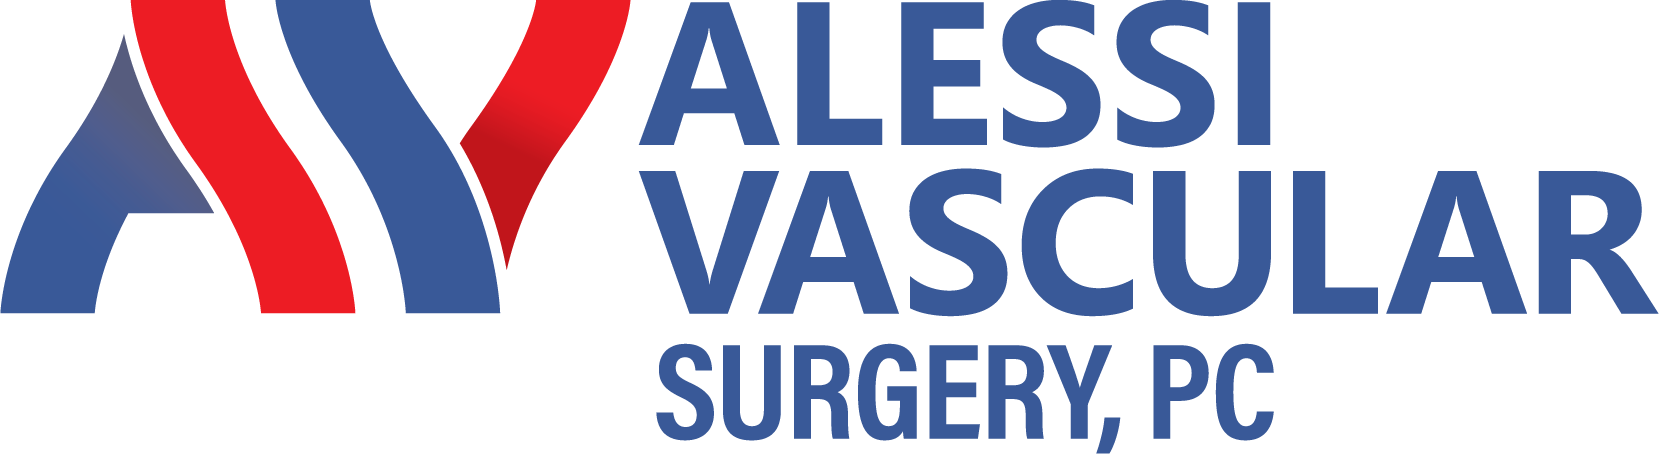 Alessi Vascular Surgery, PC - Christopher Alessi, MD, RPVI, FACS